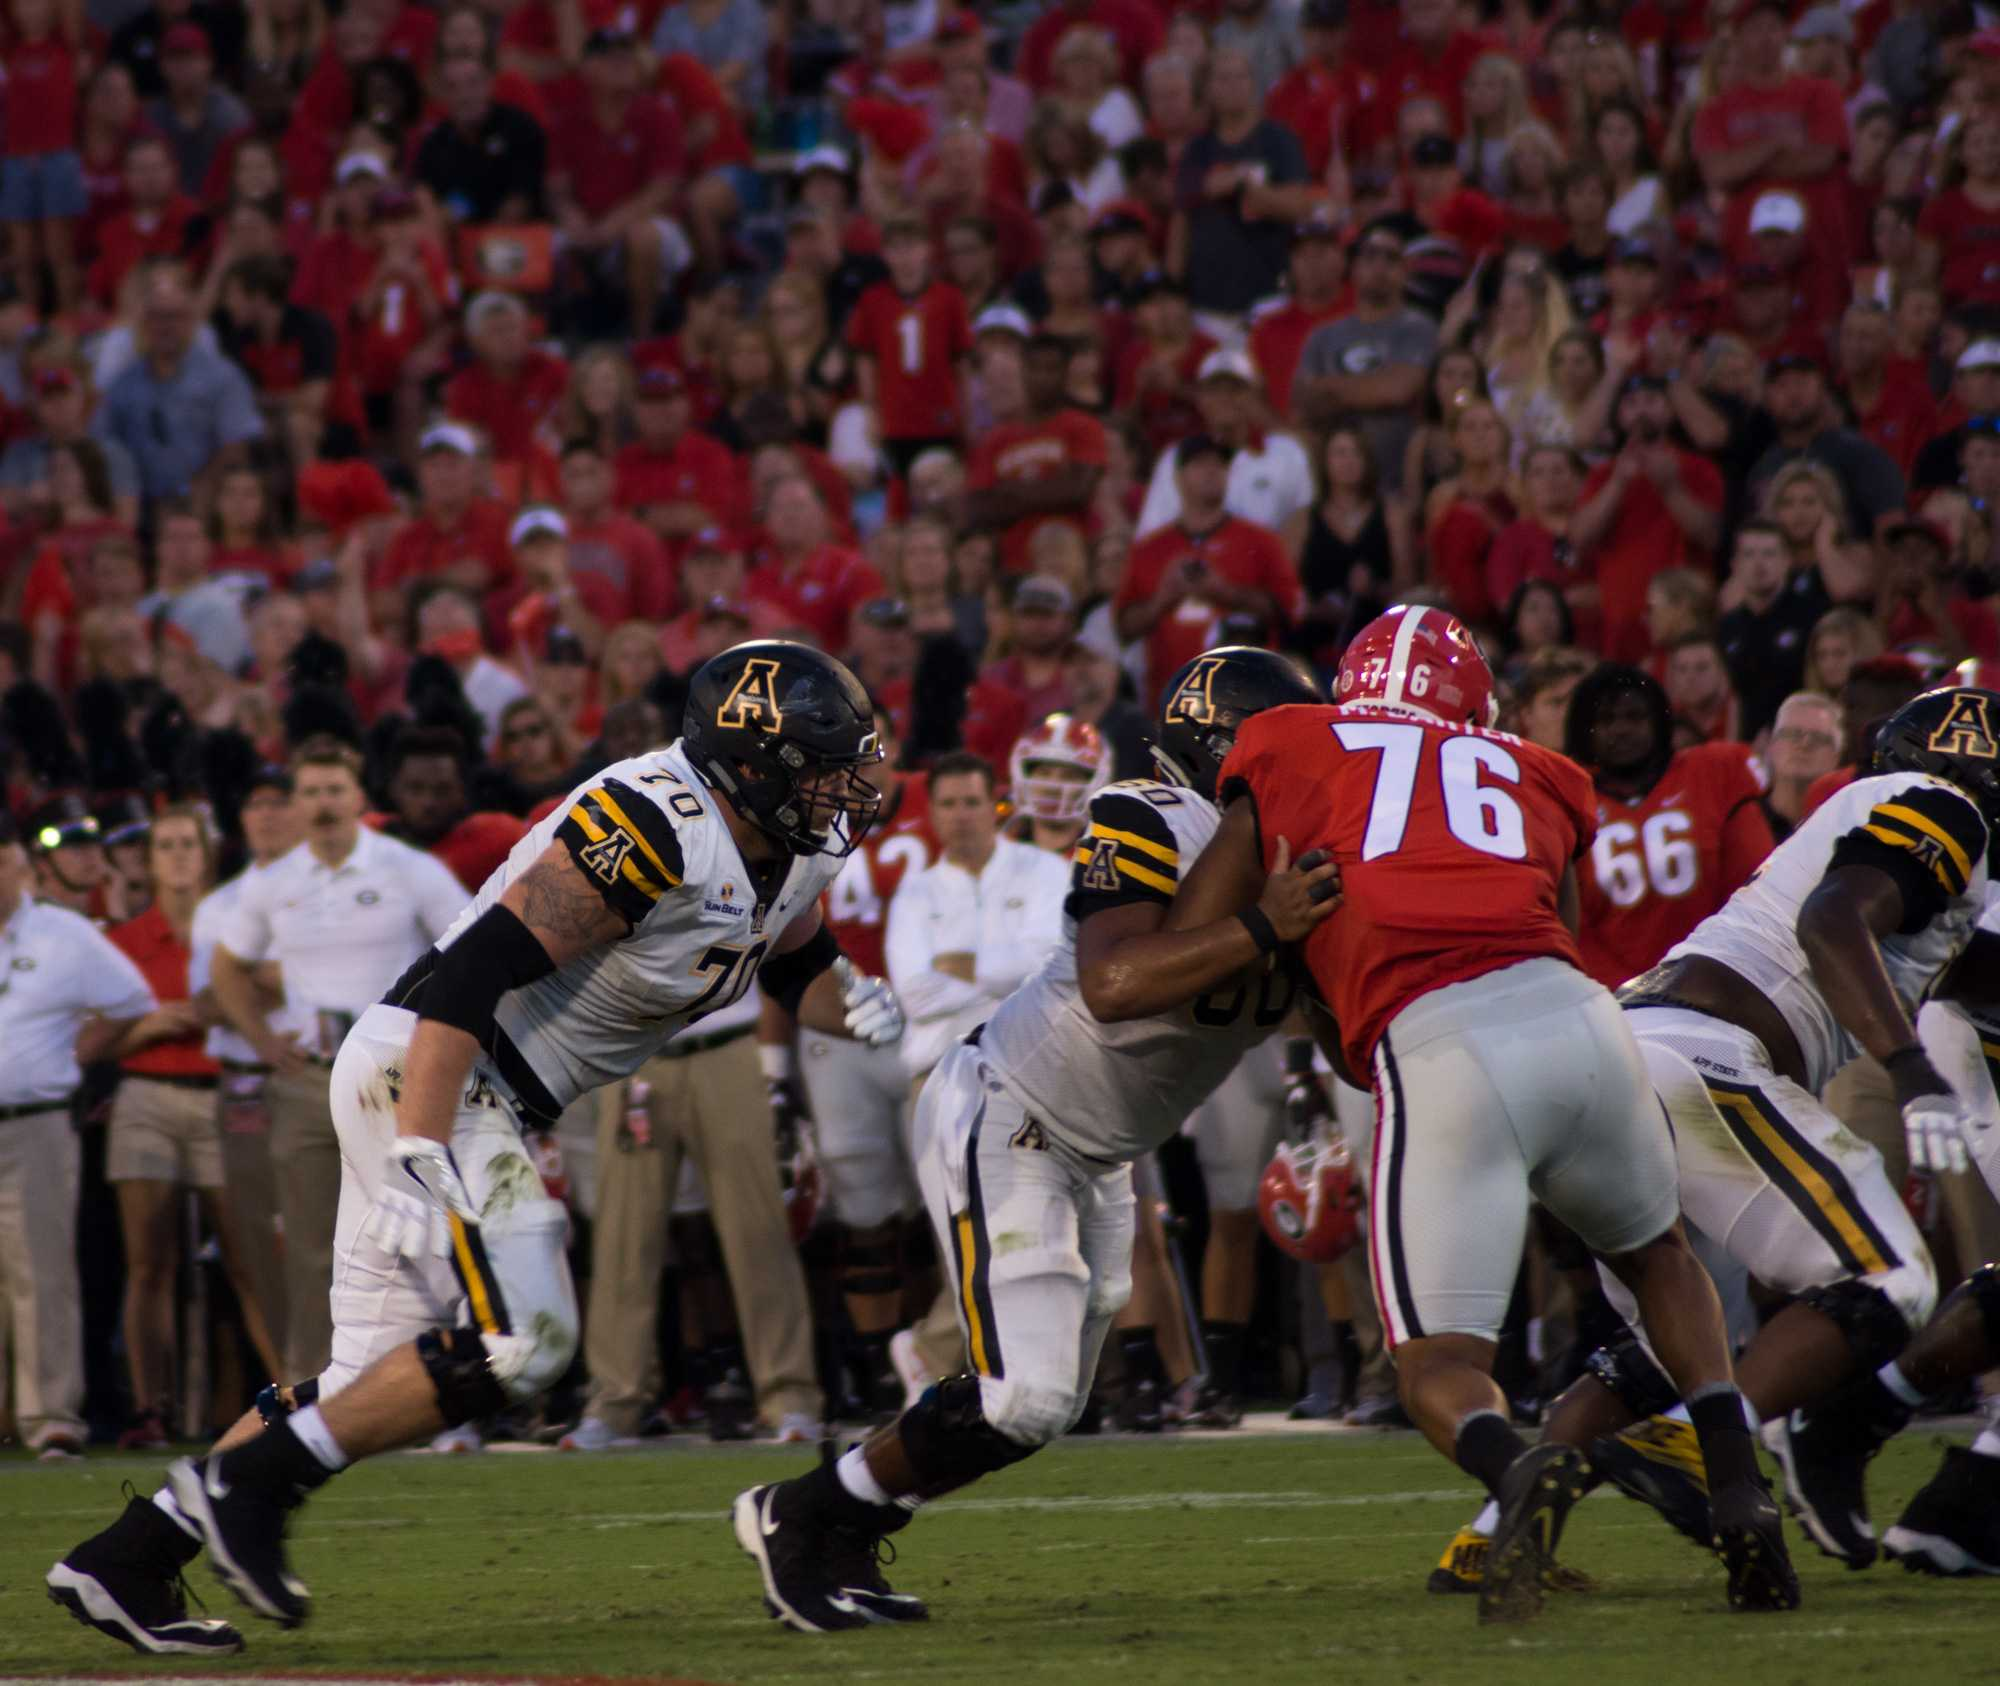 Senior experience mixed with talented youth: A look at App's offensive line